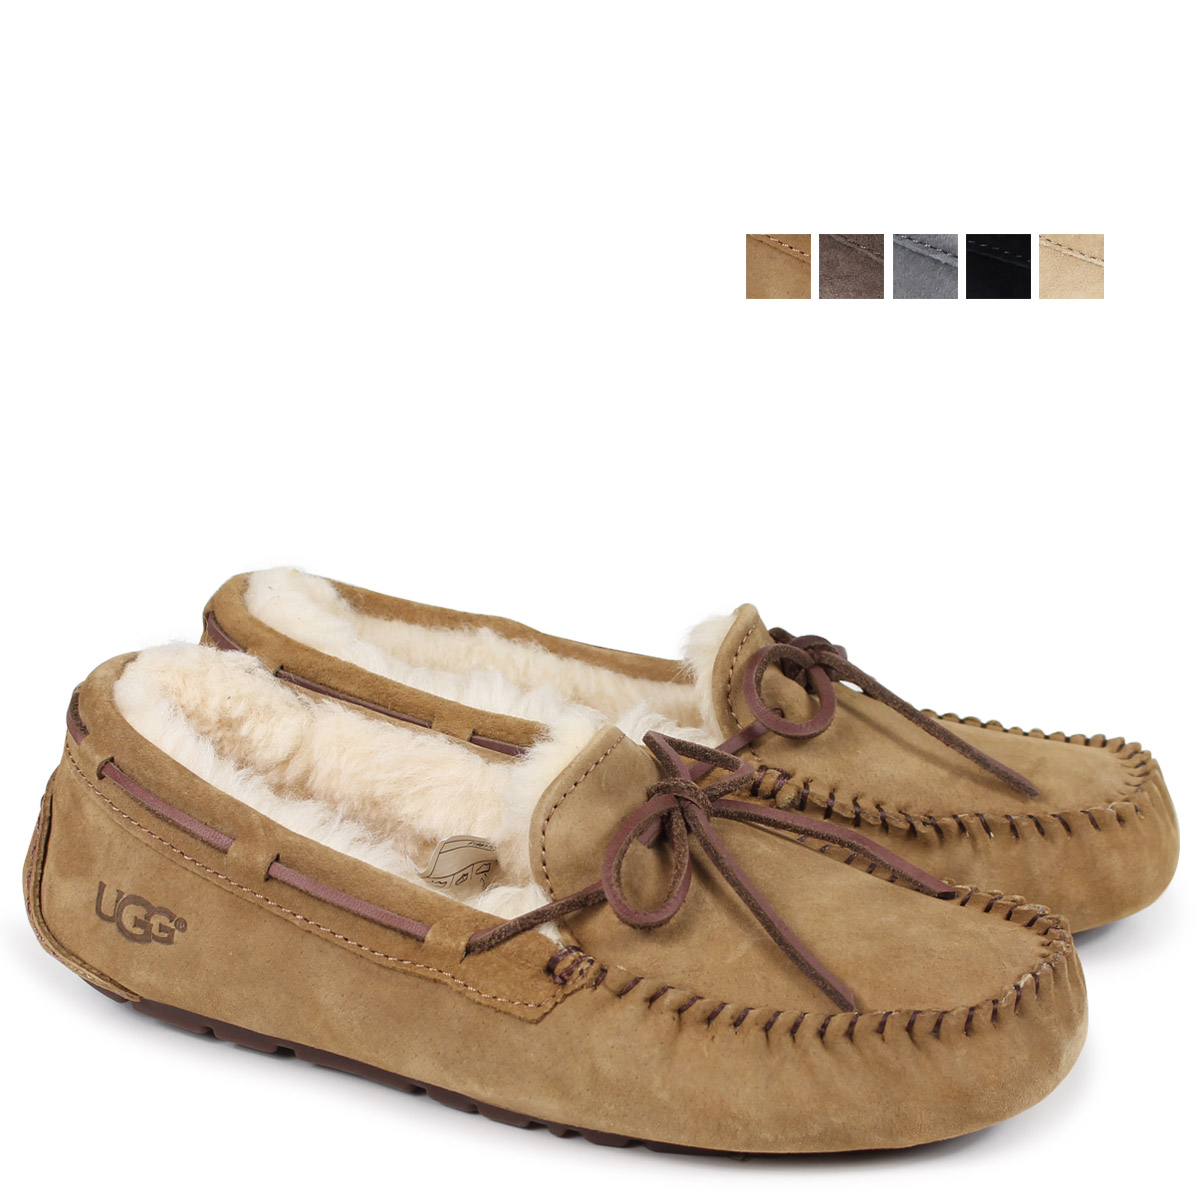 008824d9af19 39% ☆ UGG UGG women s Dakota moccasin footwear 5612 W DAKOTA WOMENS 1001631  Womens FALL 2013 new Mouton Sheepskin